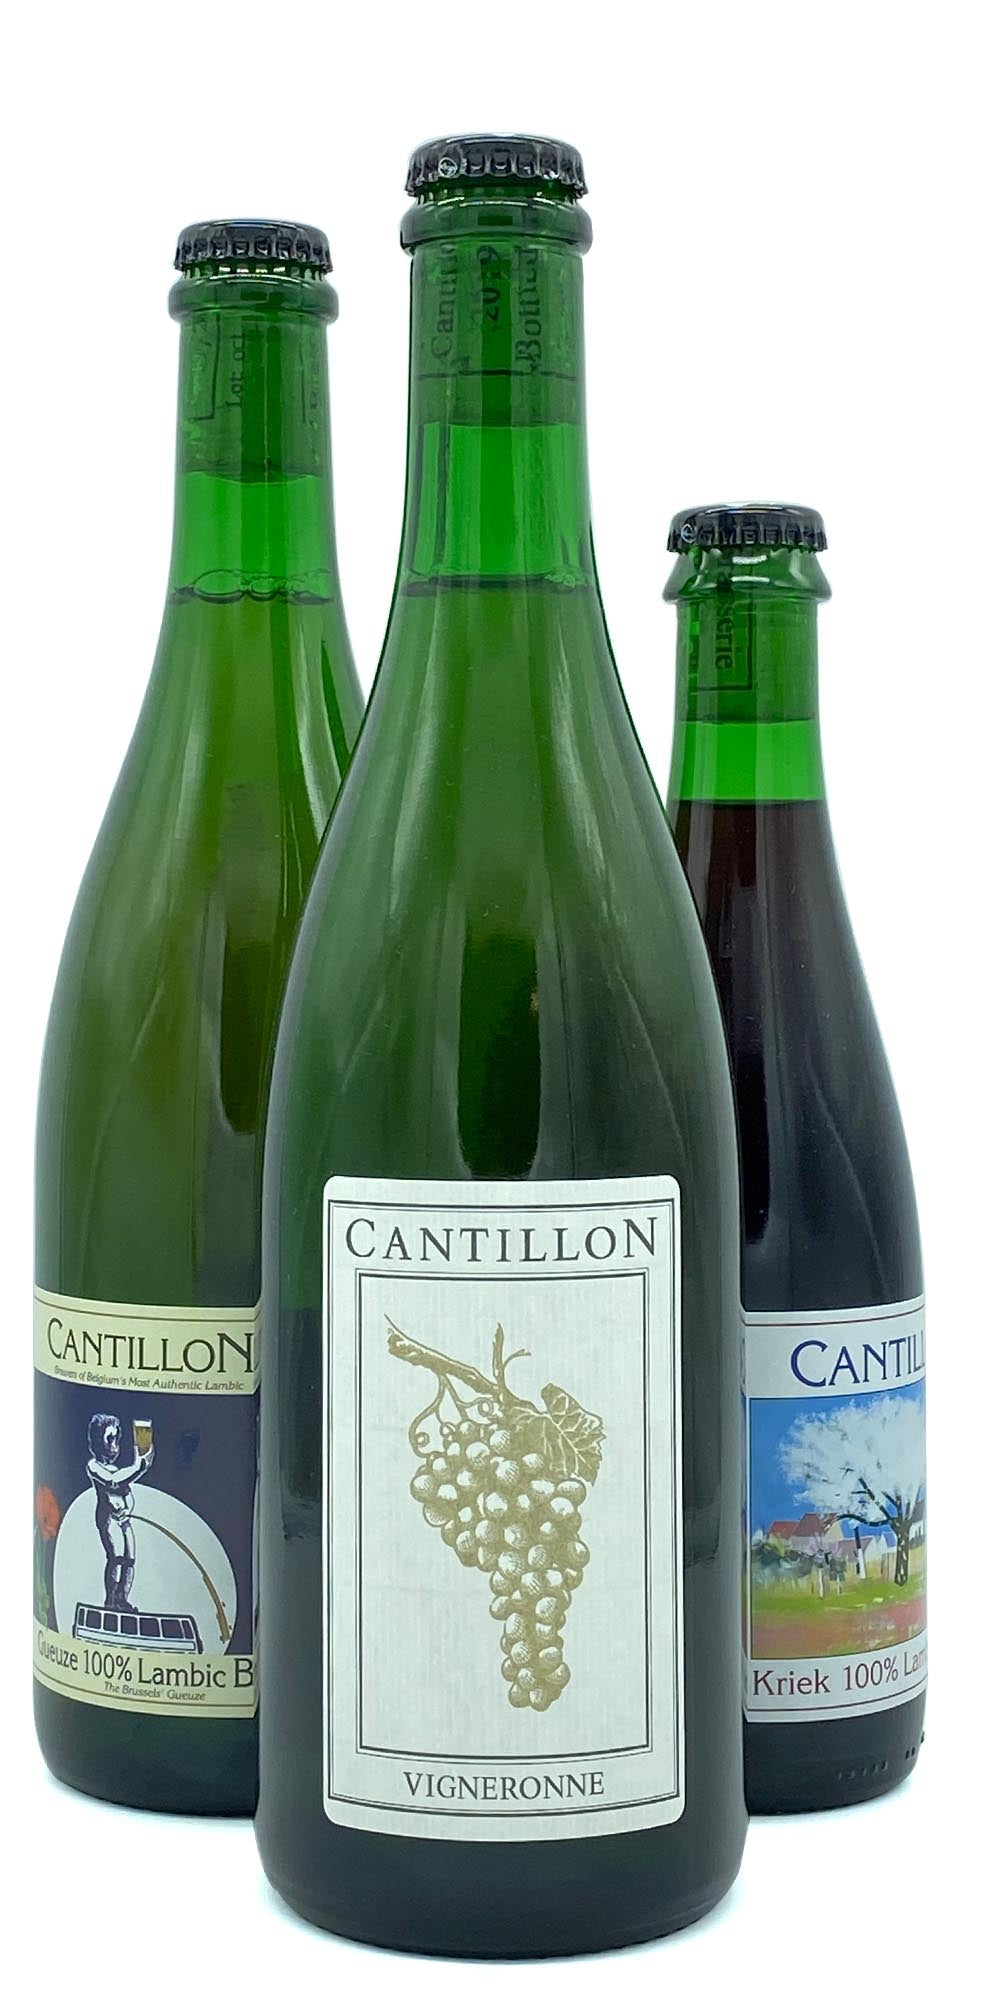 Cantillon - Vigneronne 2019 (bundle)